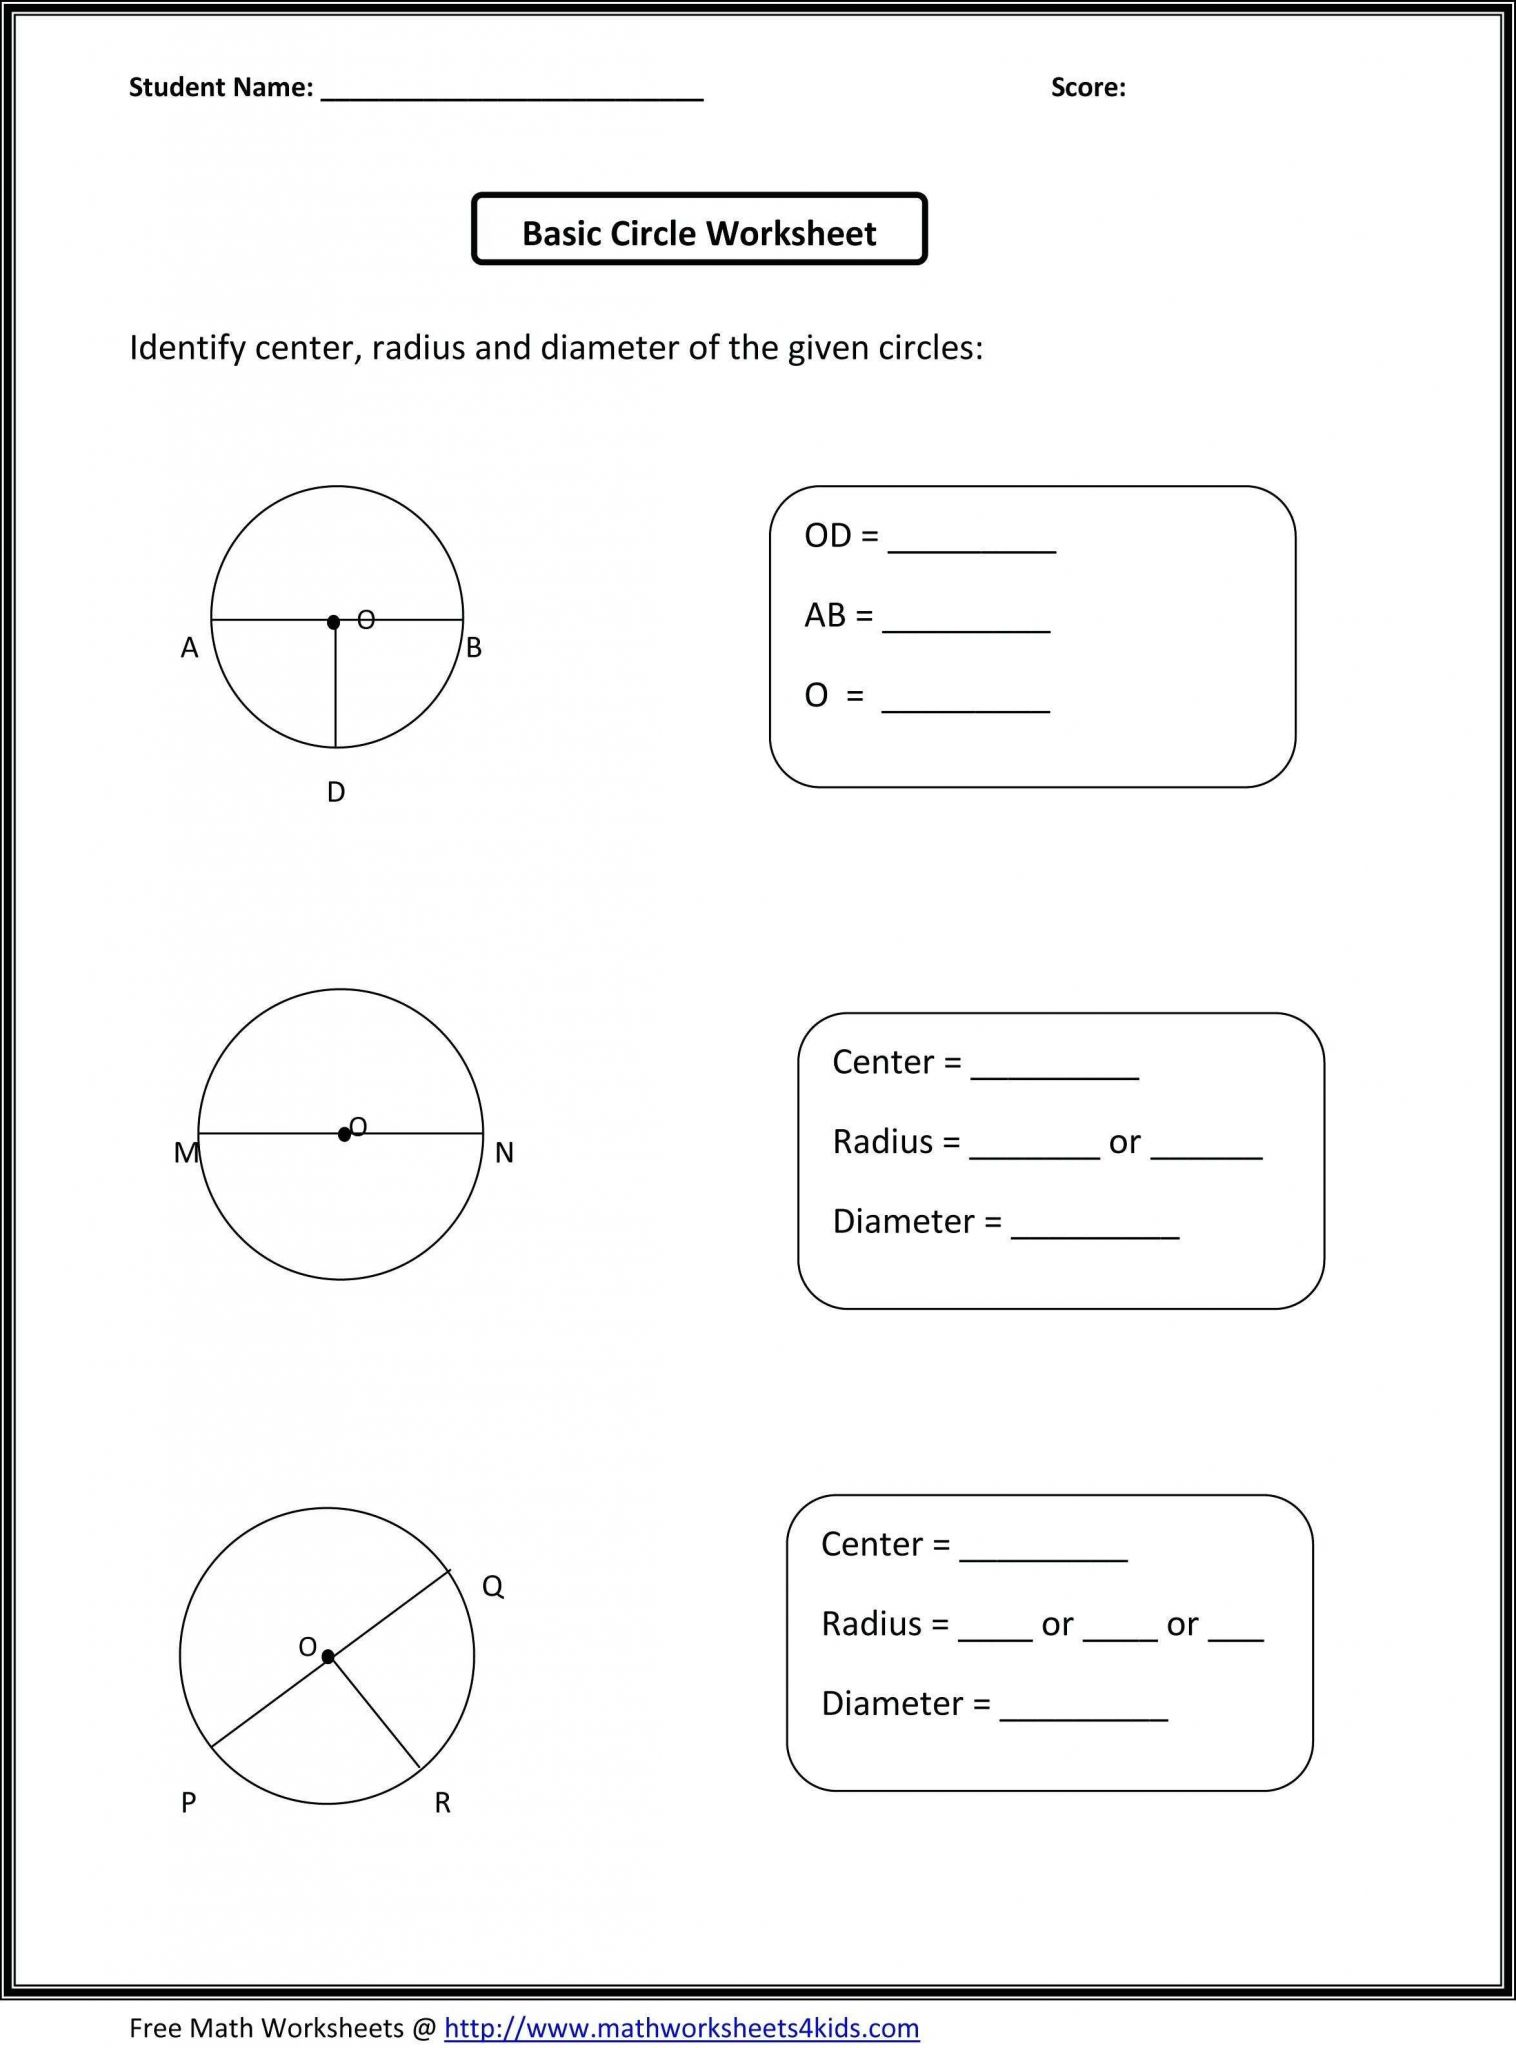 Dna Replication Coloring Worksheet Answer Key Or Dna The